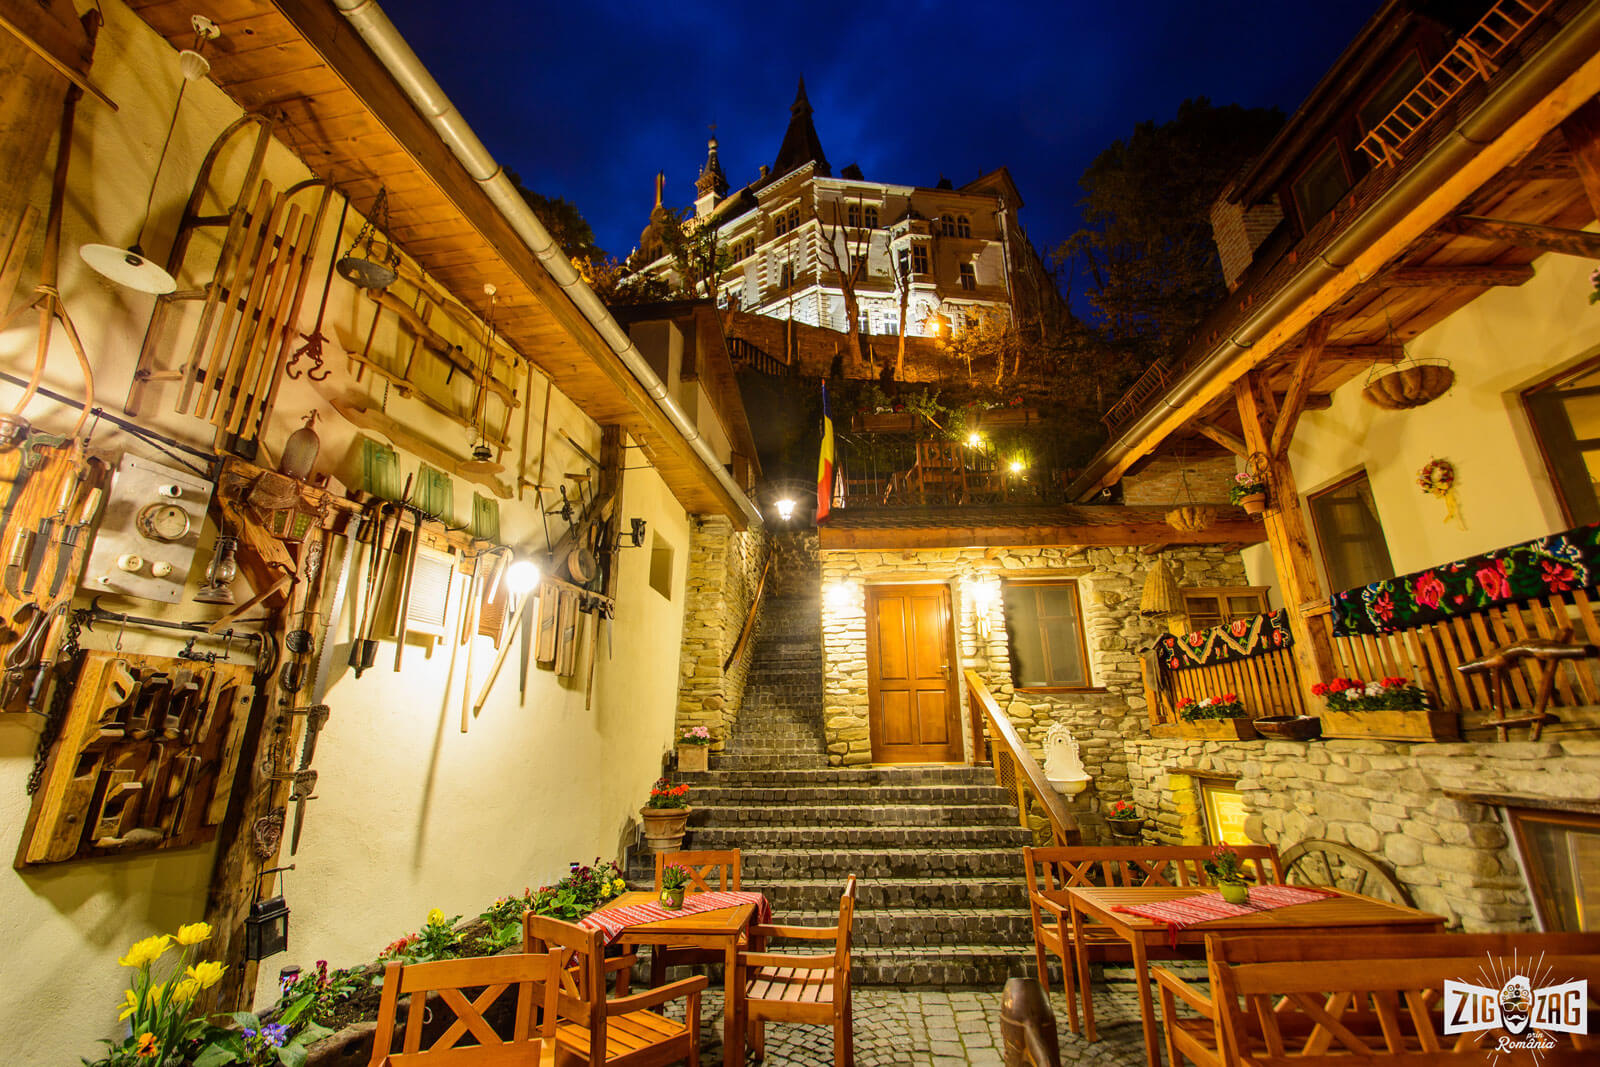 Savri House, a reminiscence of medieval legendary times